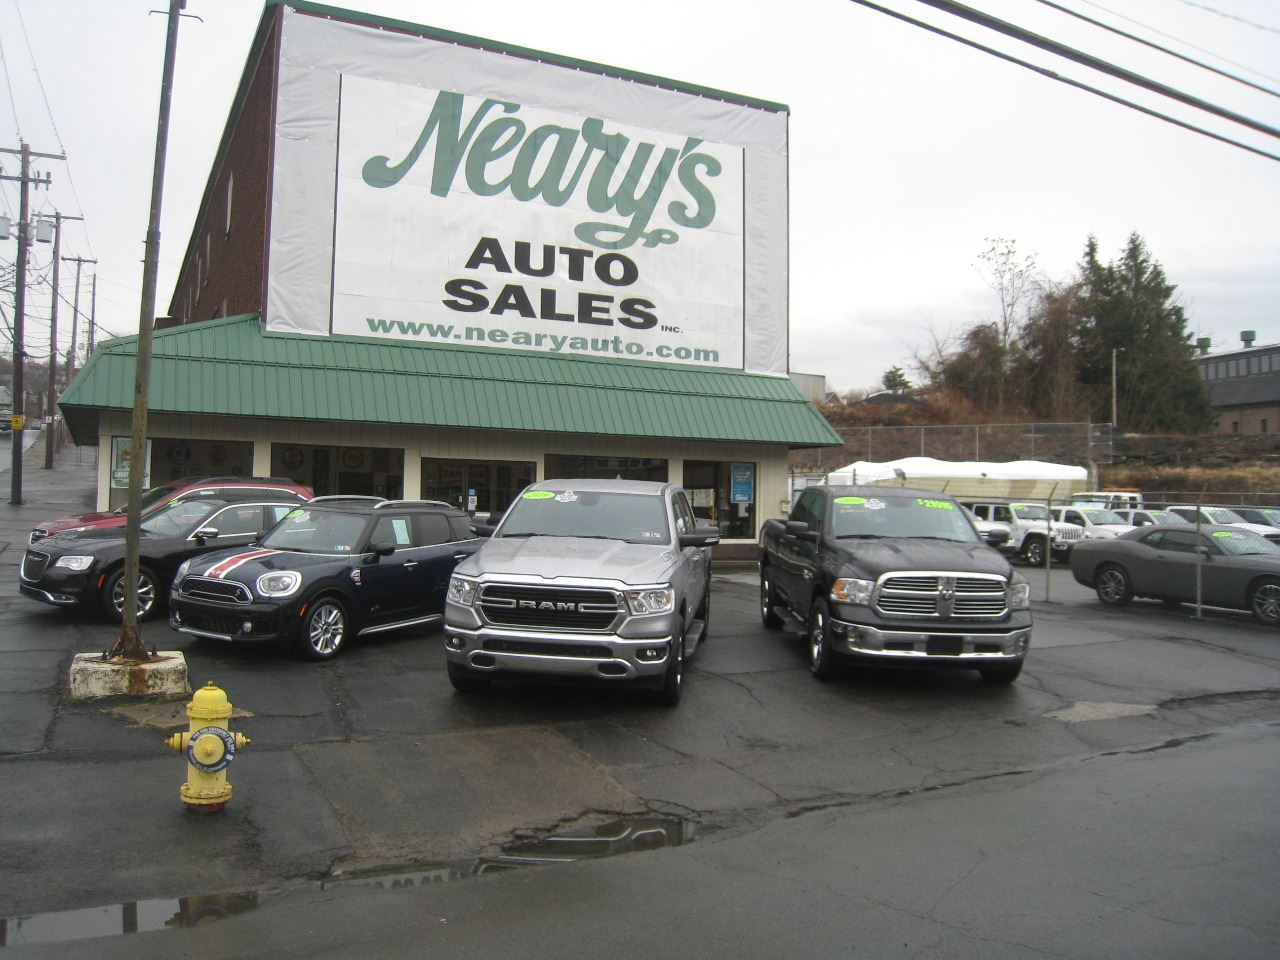 Neary's Auto Sales & Svc Inc